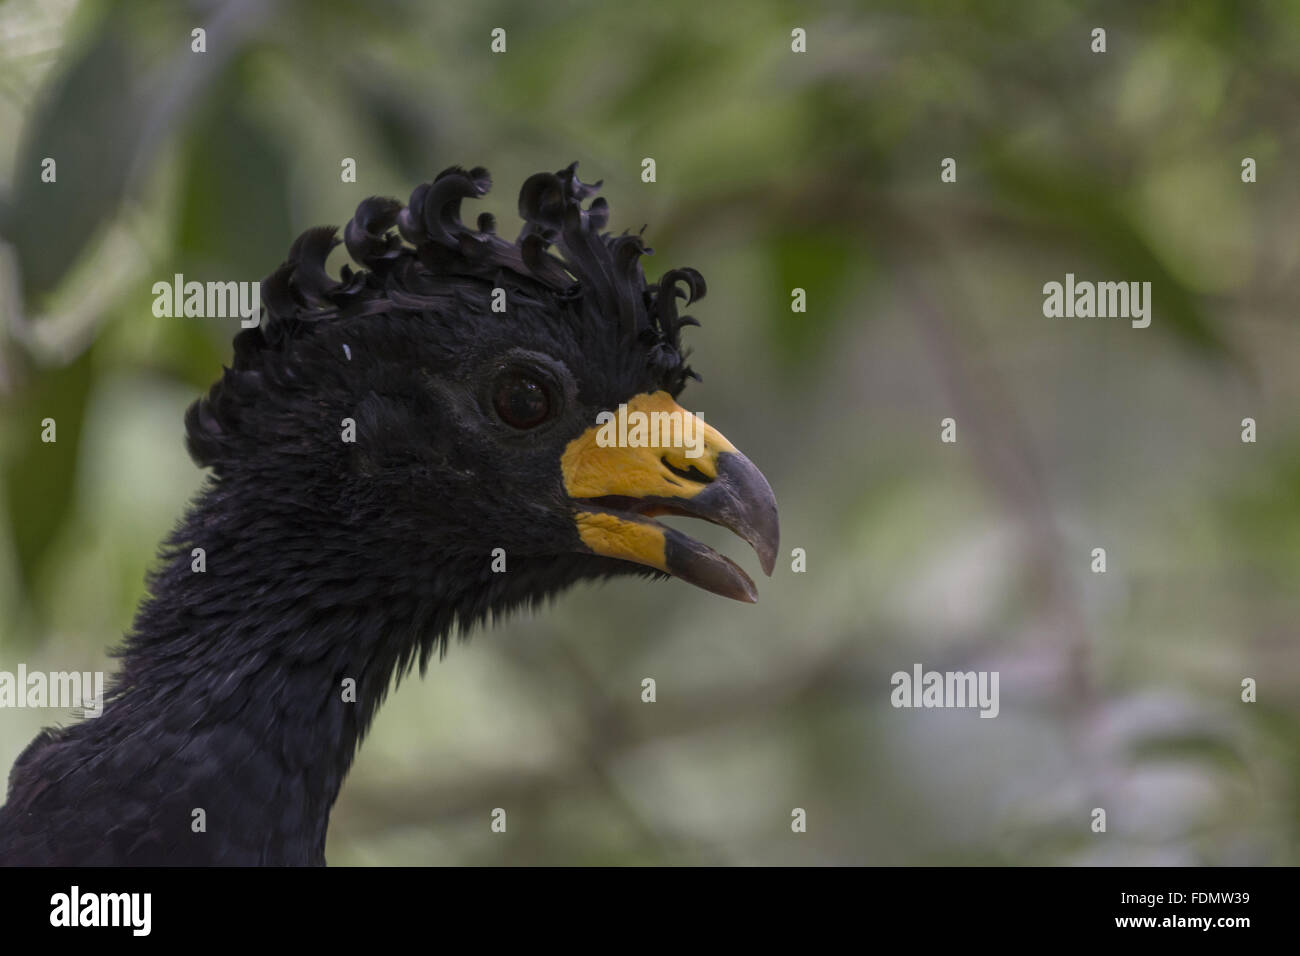 Close to mutum-de-plume male in Bird Park - Stock Image